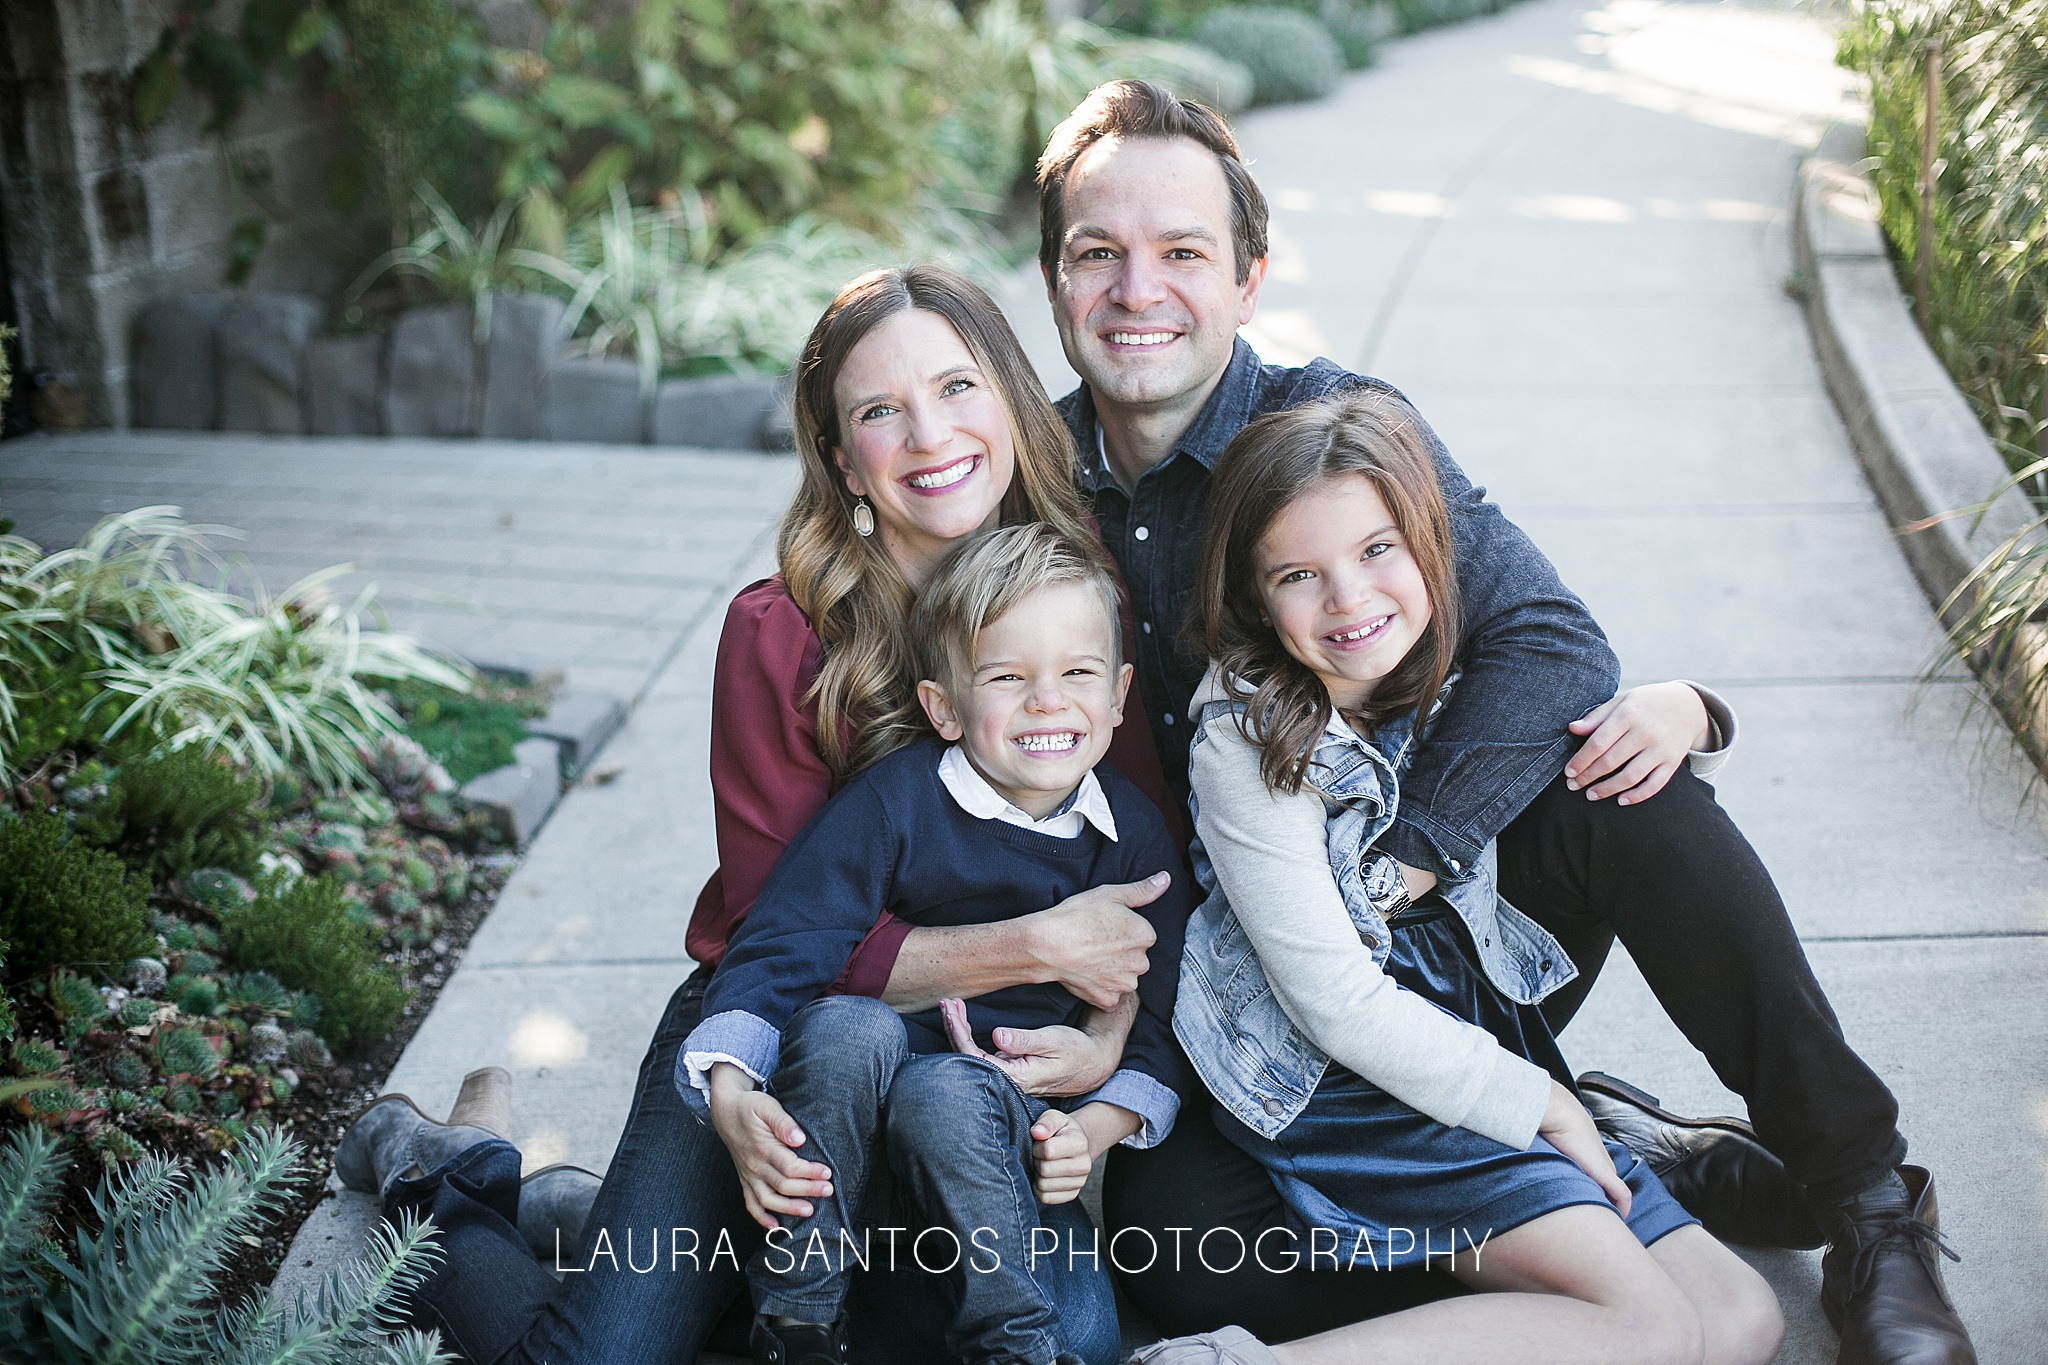 Laura Santos Photography Portland Oregon Family Photographer_0626.jpg